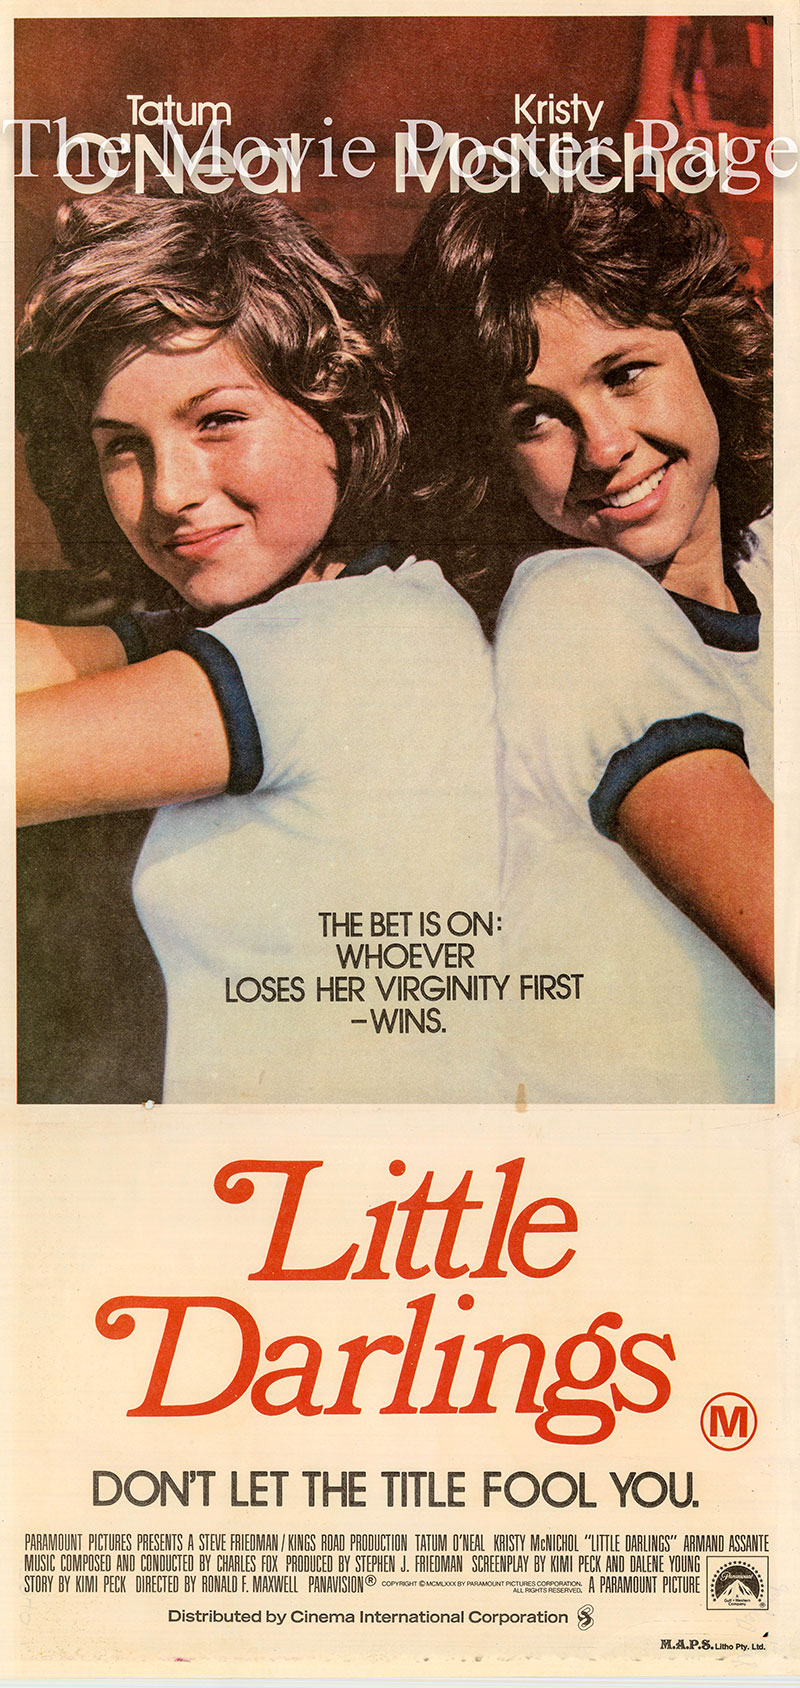 Pictured is an Australian daybill poster for the 1980 Ronald F. Maxwell film Little Darlings starring Tatum O'Neal.